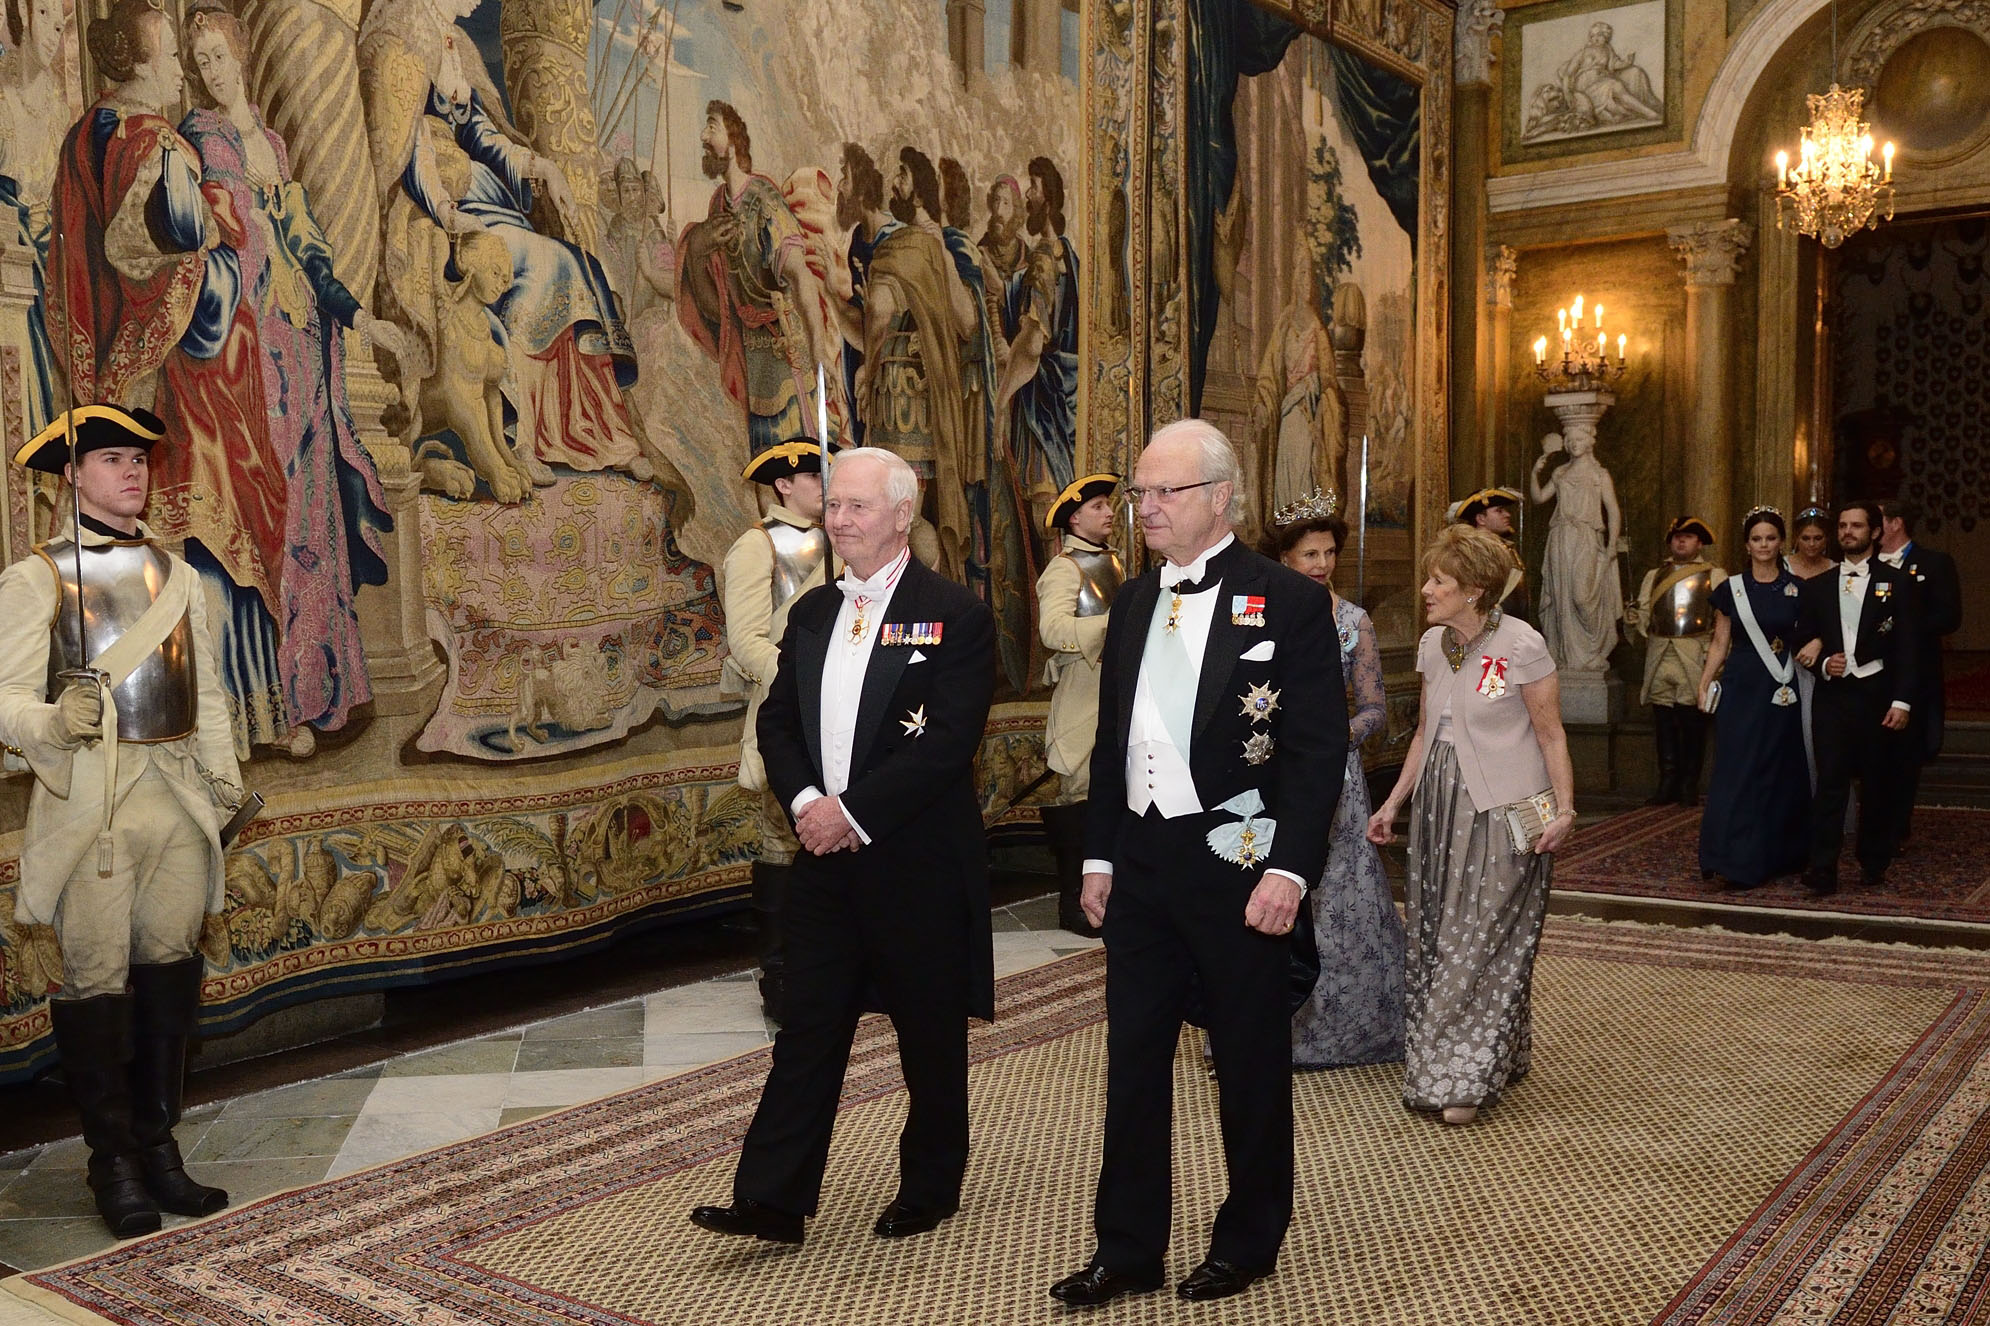 Later that evening, Their Excellencies and Canadian delegates attended a State banquet hosted by Their Majesties at the Royal Palace.